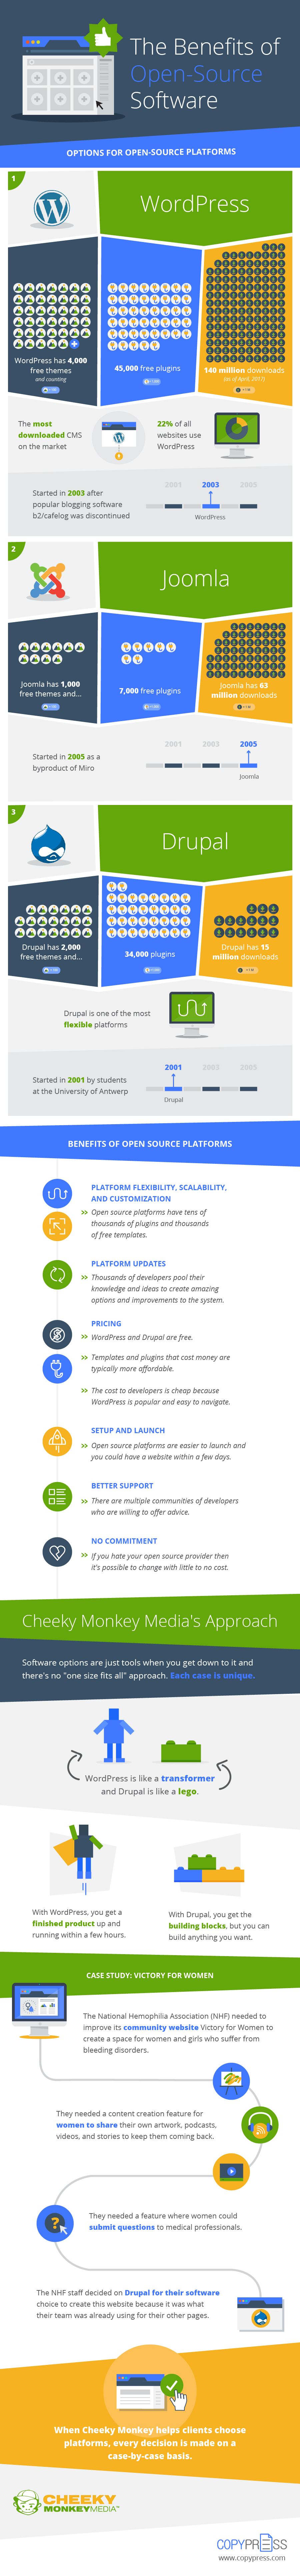 Benefits of Using an Open Source CMS (INFOGRAPHIC)